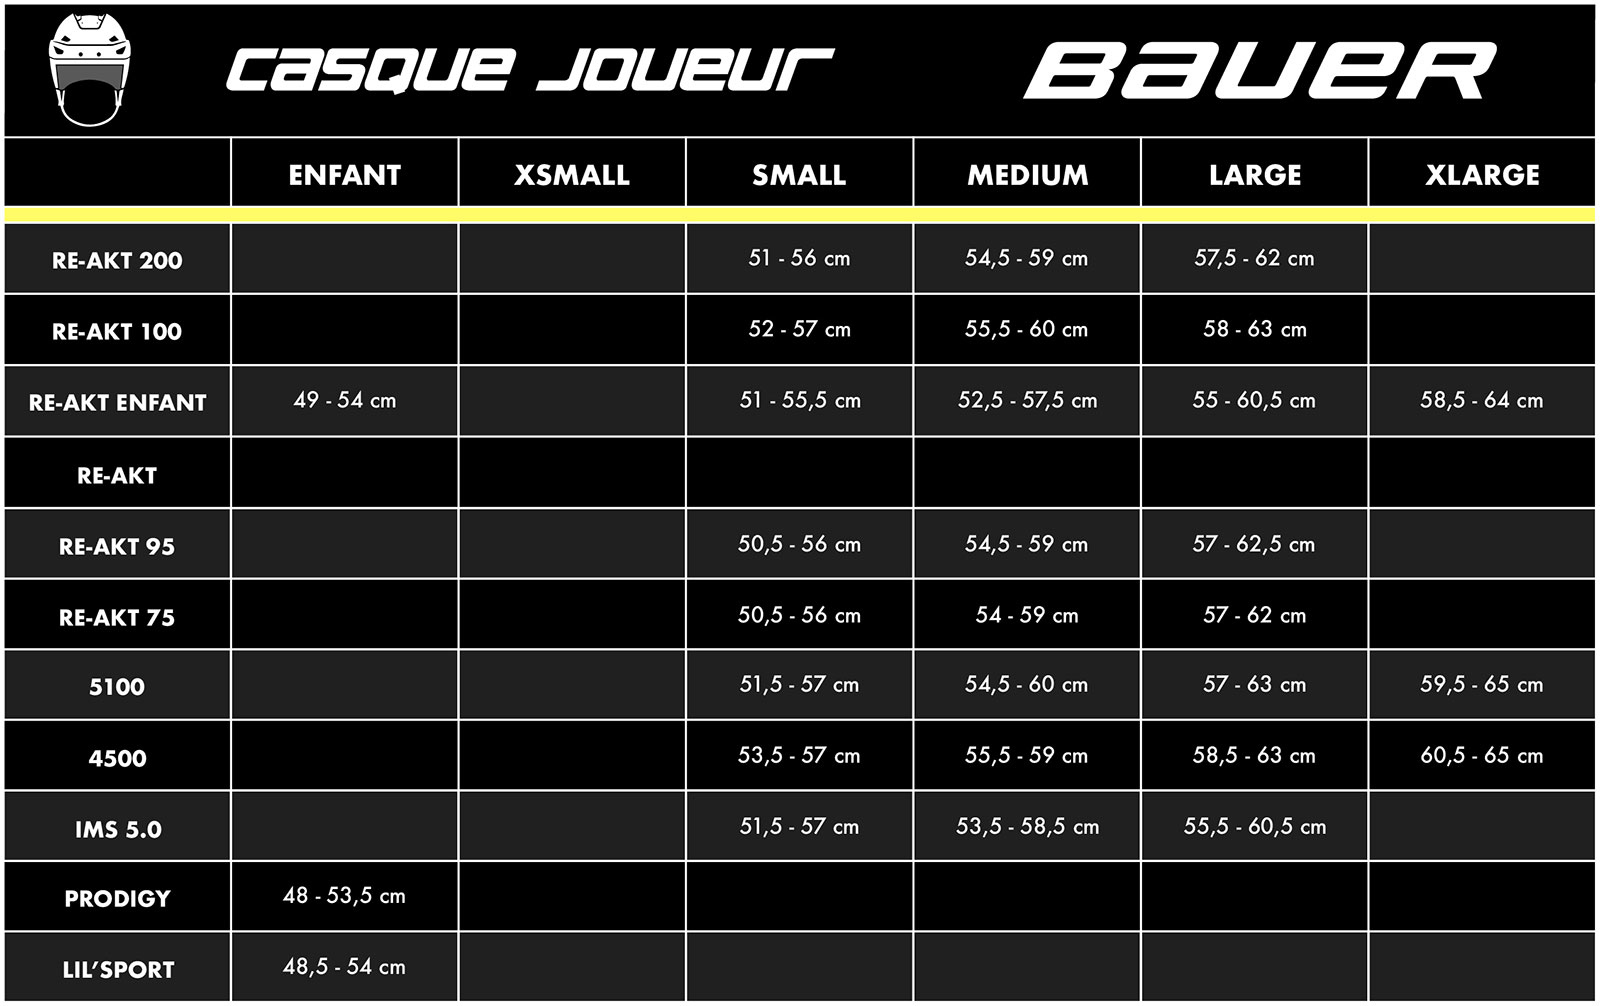 Guide de taille casque Bauer hockey Pro Patinage